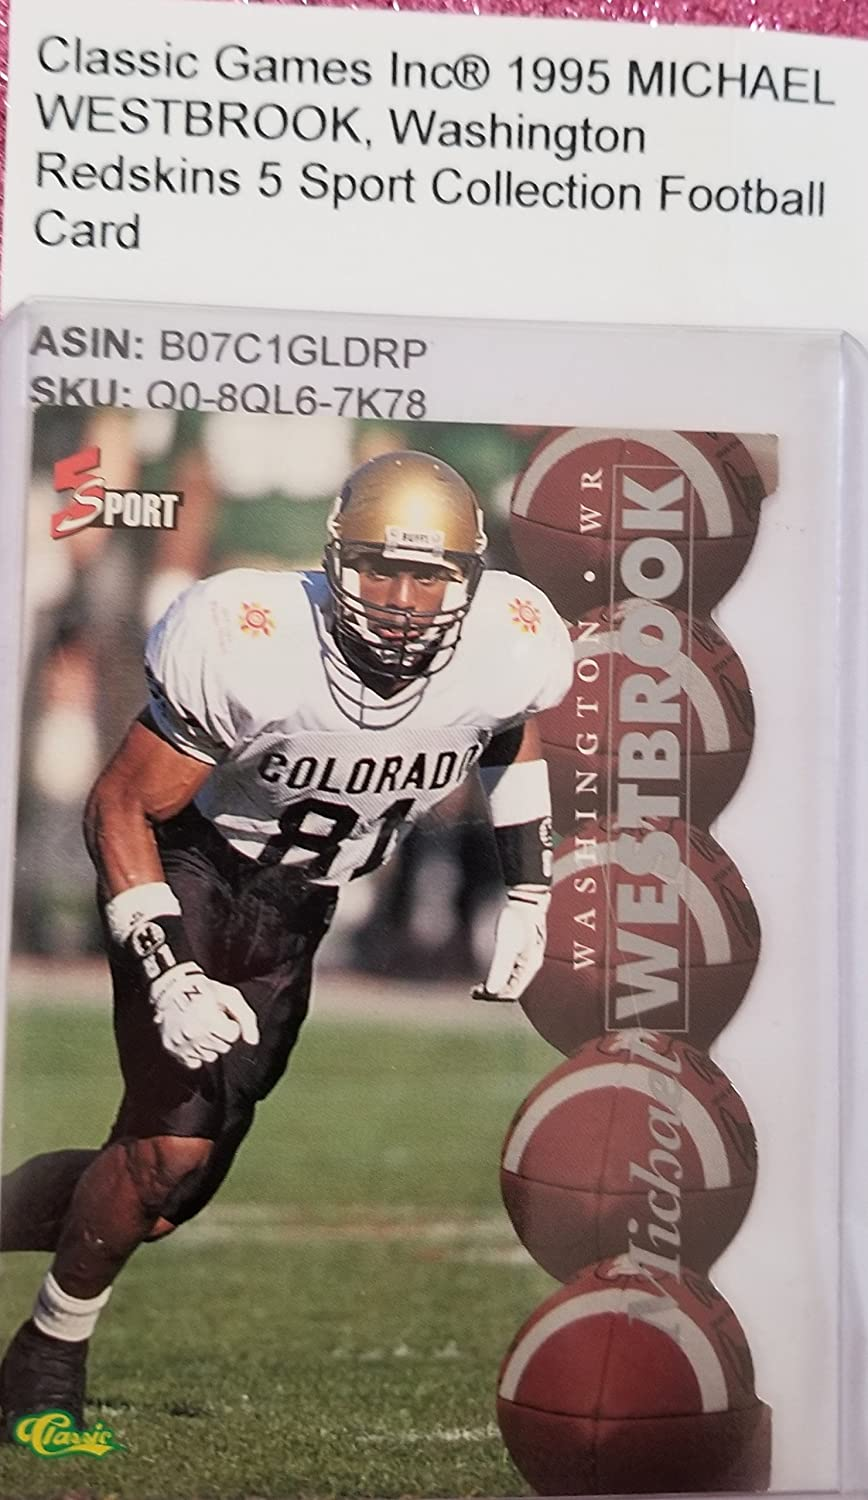 1995 Classic Games Inc® MICHAEL WESTBROOK, Washington Redskins 5 Sport Collection Football Card